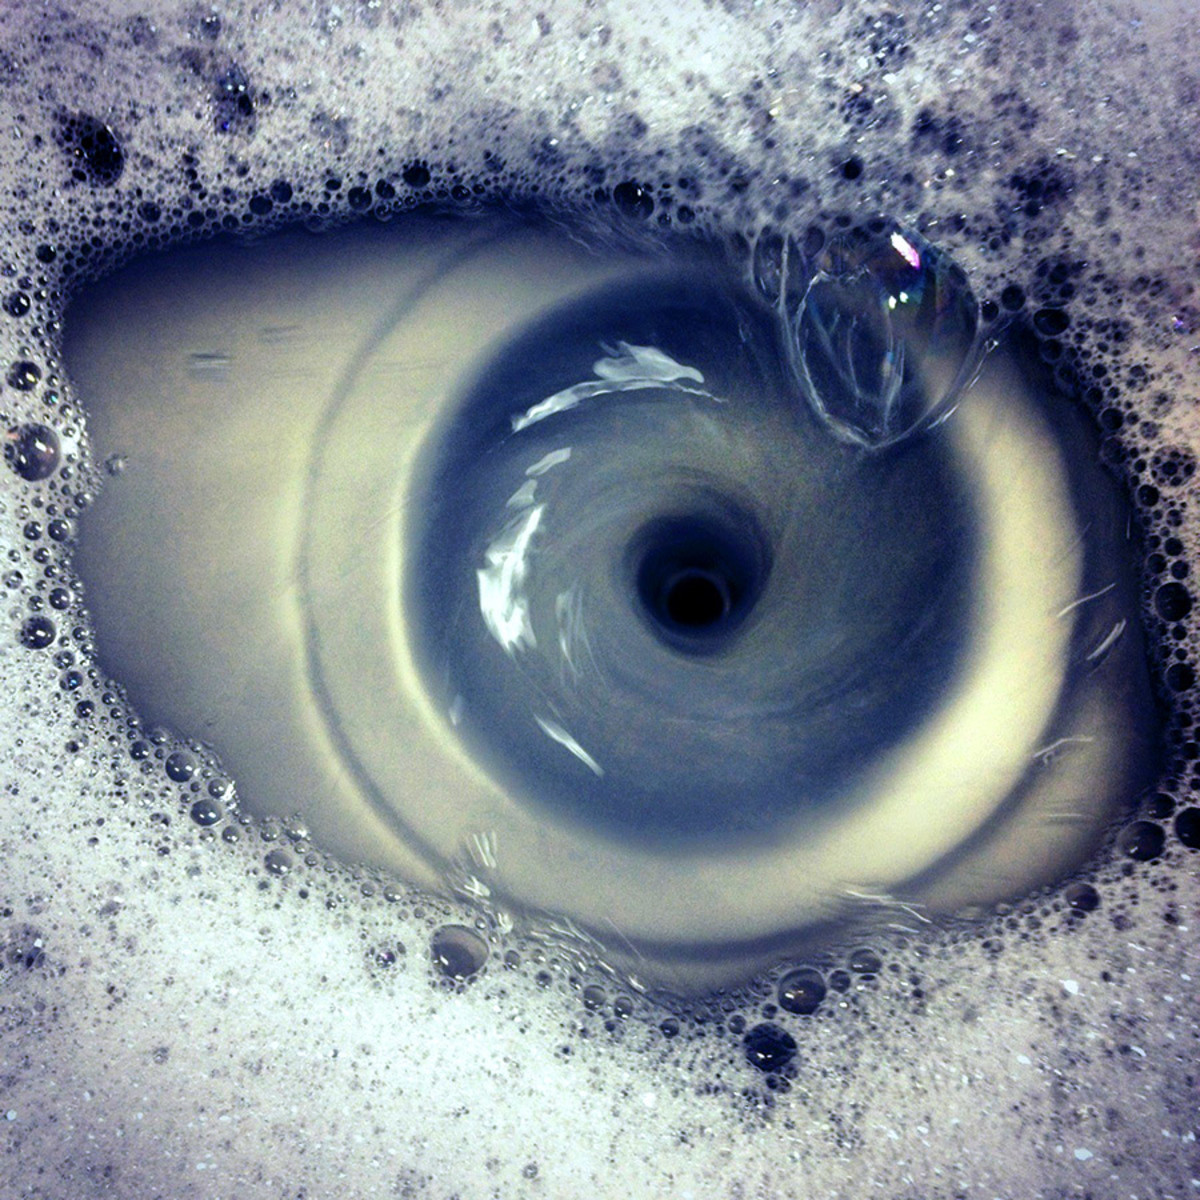 Do you see soapy water going down the sink or an eye?